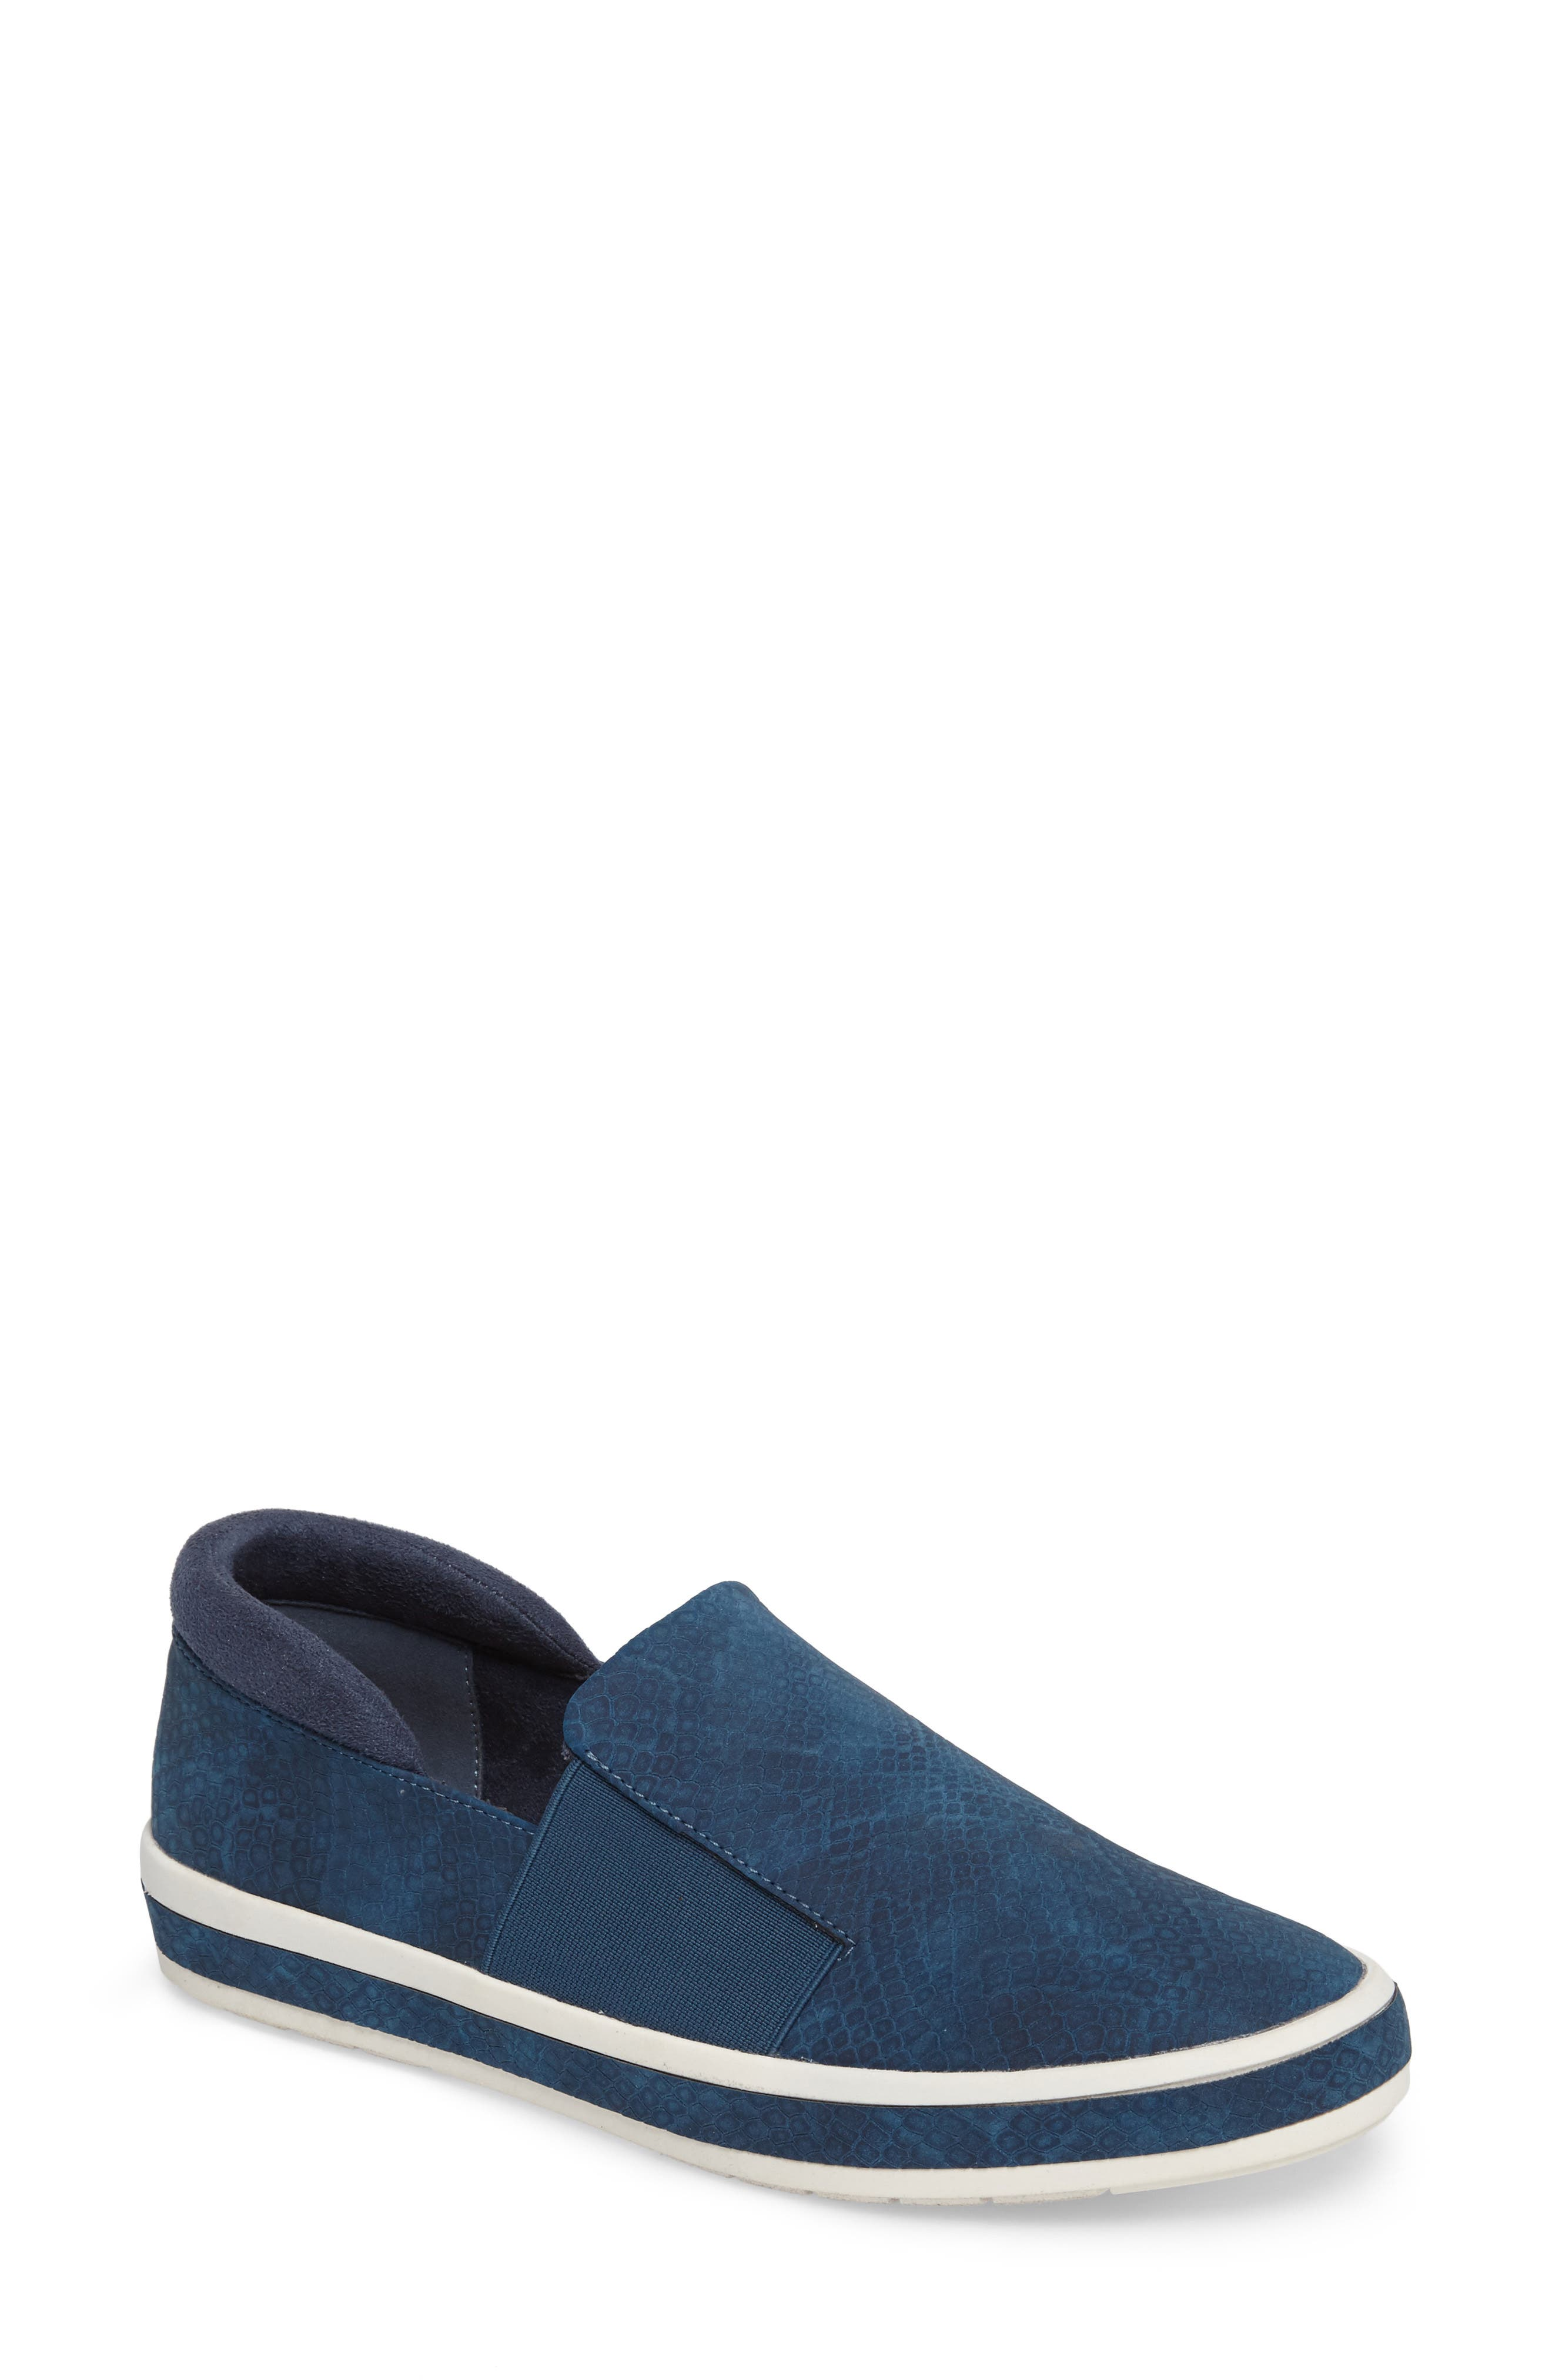 Switch II Slip-On Sneaker,                         Main,                         color, NAVY PRINTED LEATHER